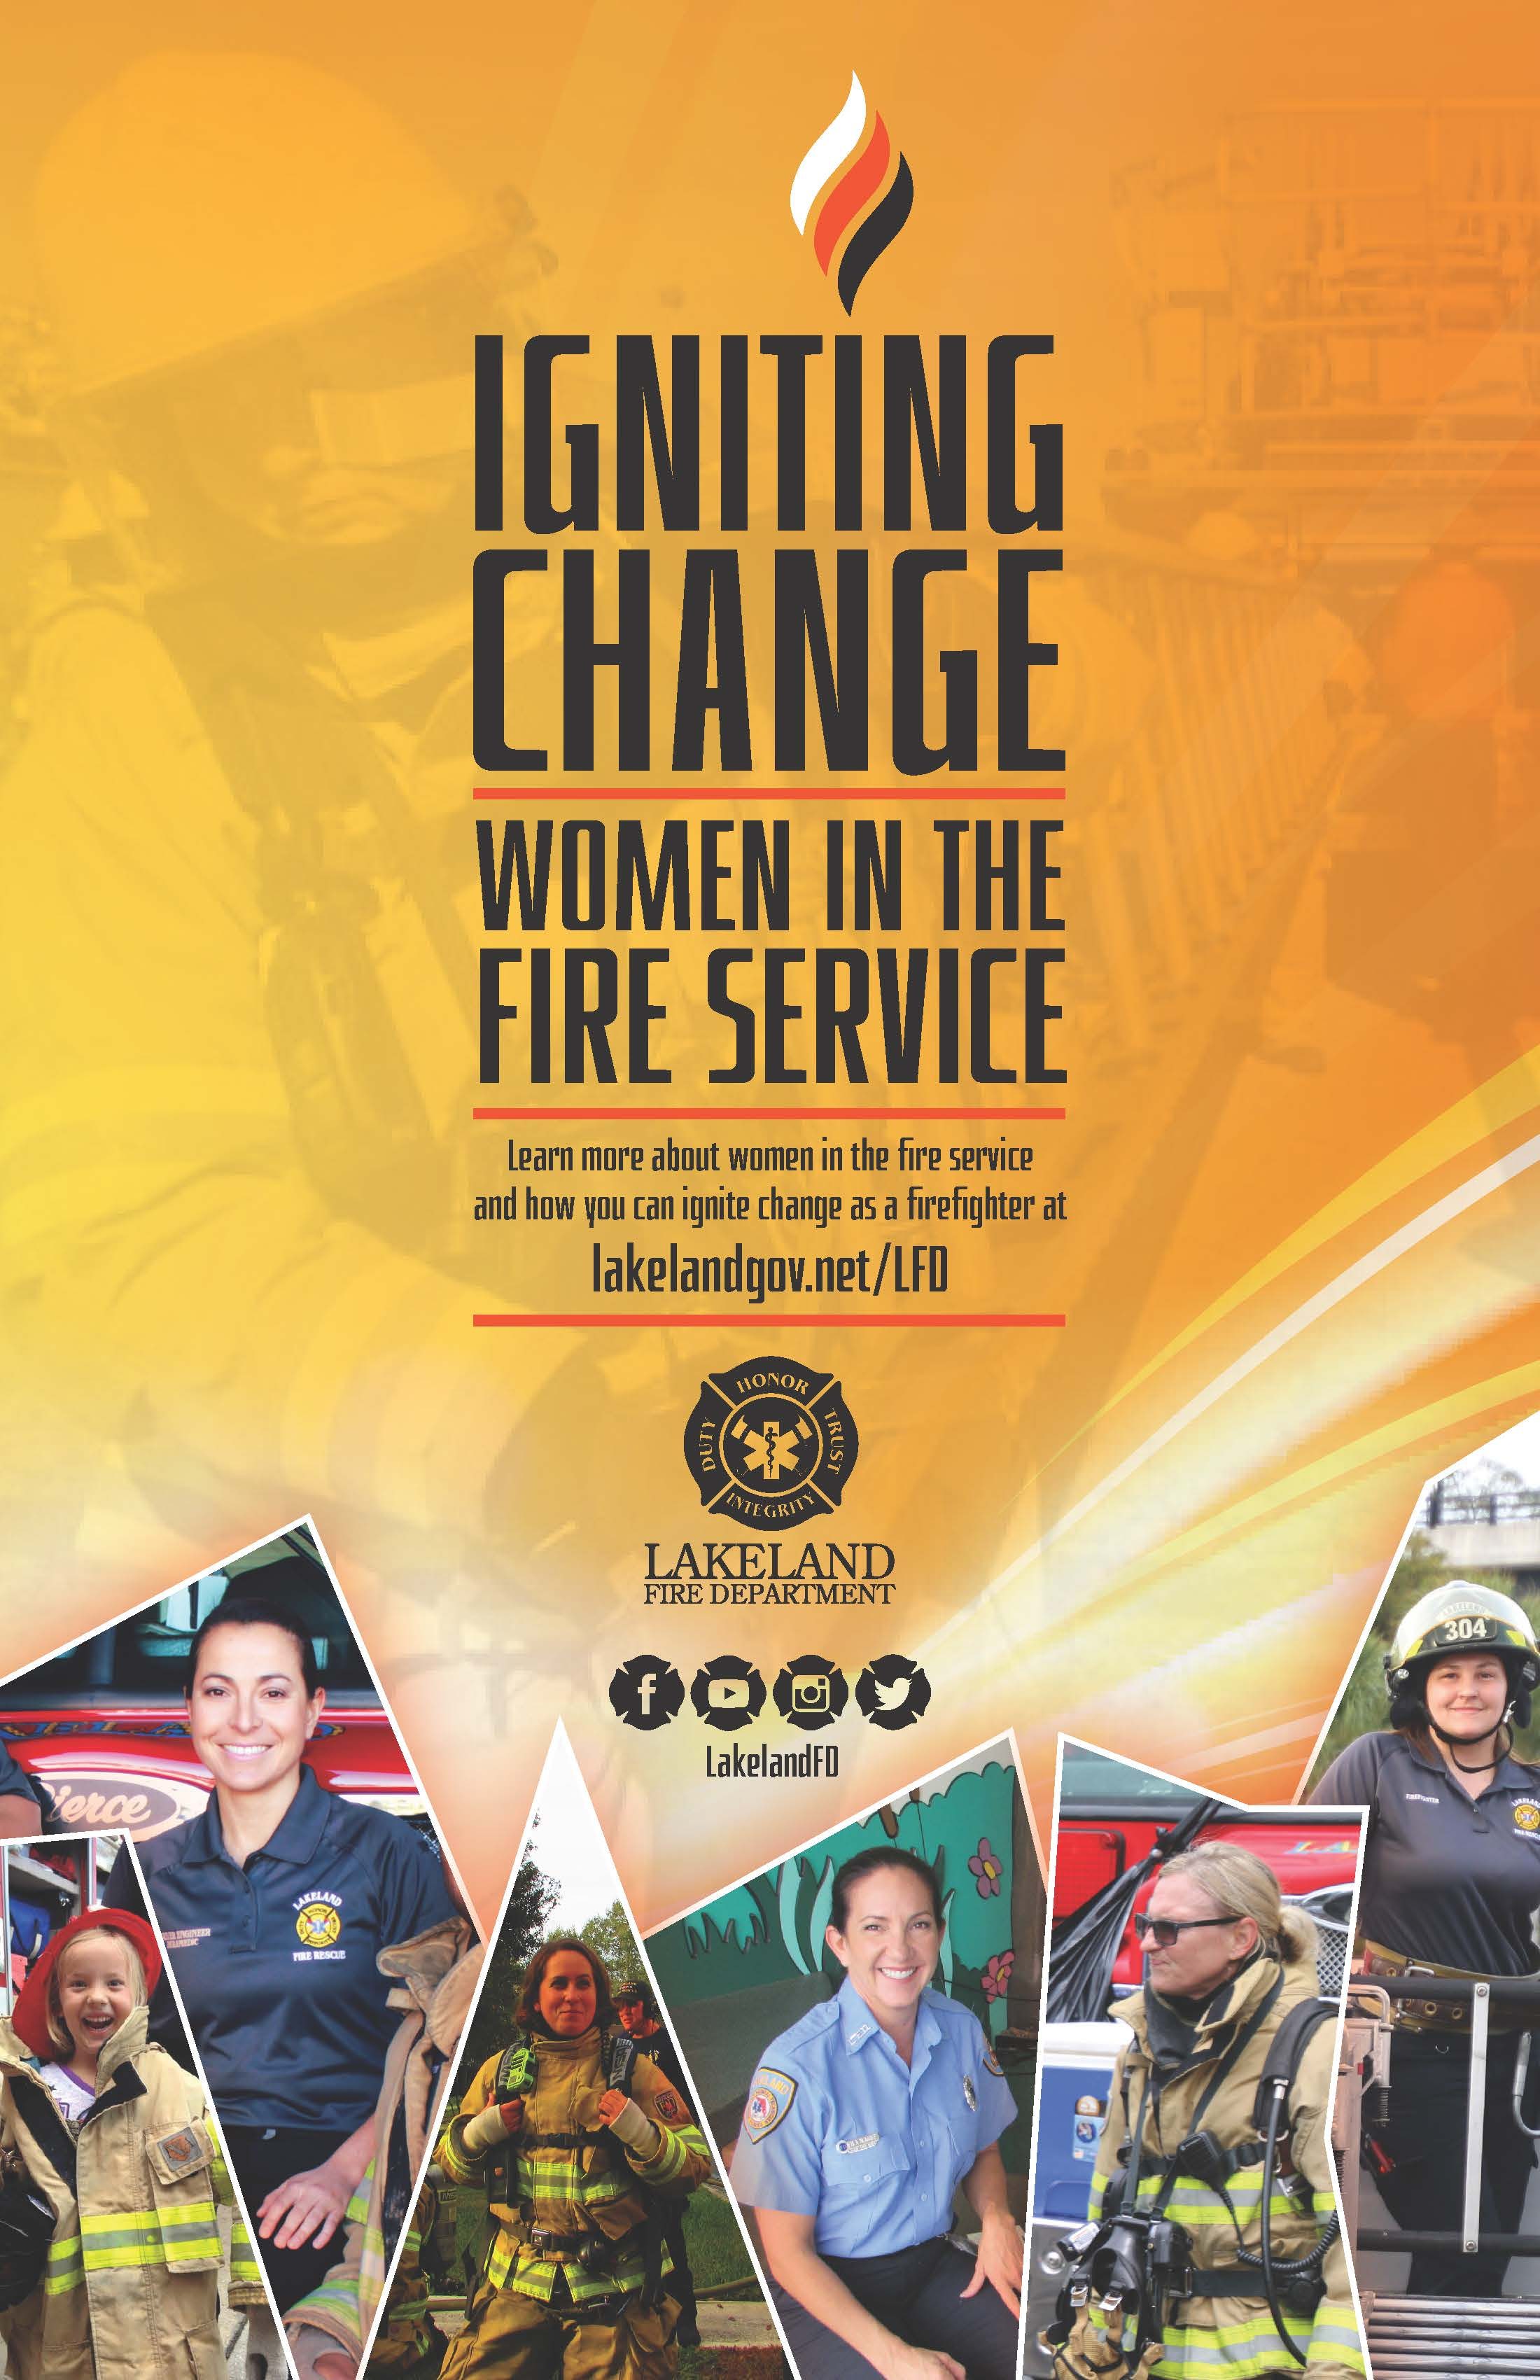 Poster for Igniting Change: Women in the Fire Service